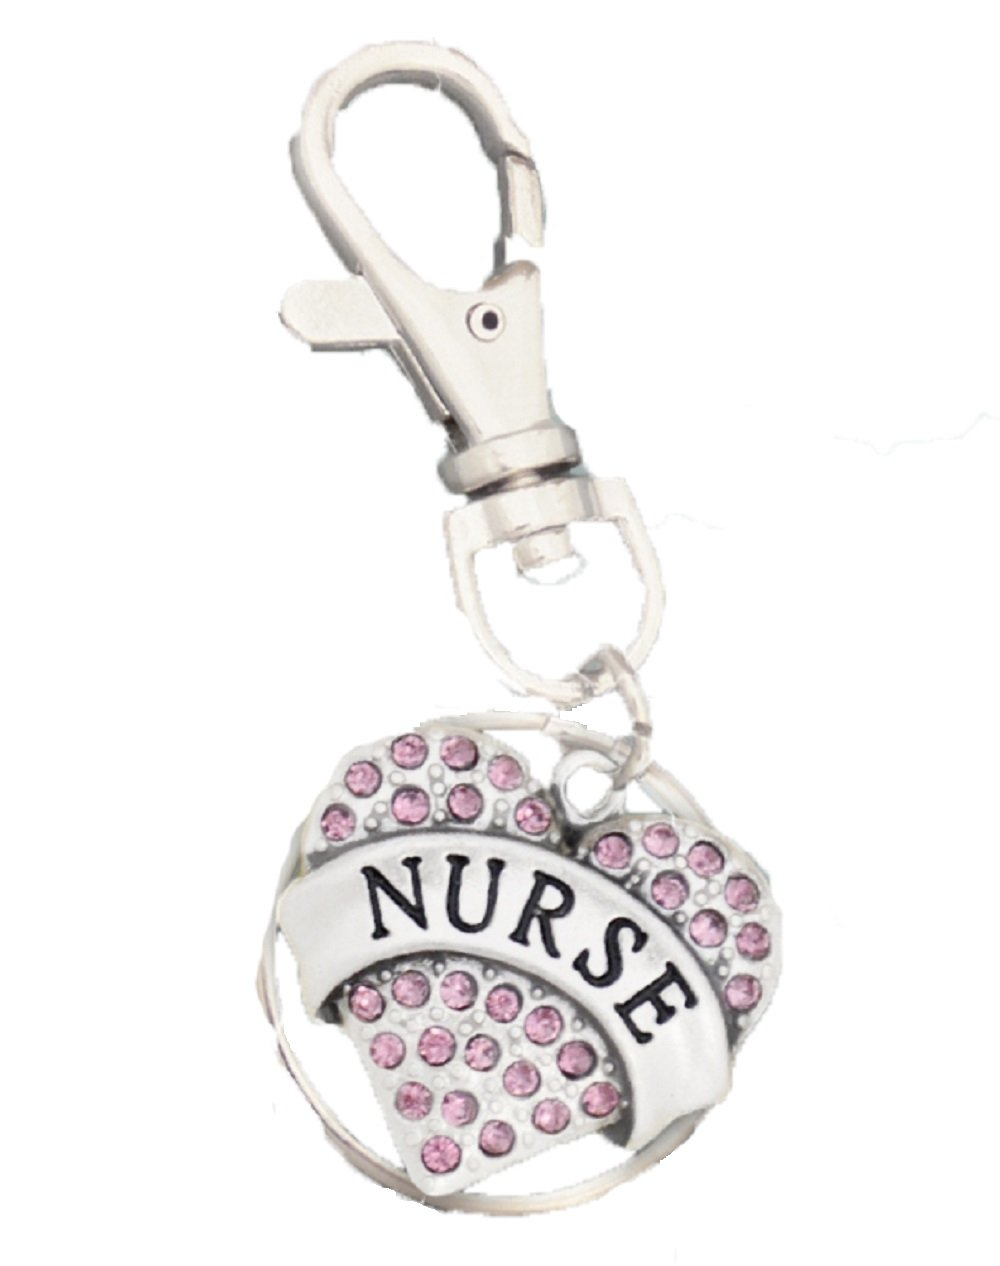 NURSE Engraved Pink Crystal Rhinestone Key Chain.Perfect Gift For your Hospital or Home Health Nurse.